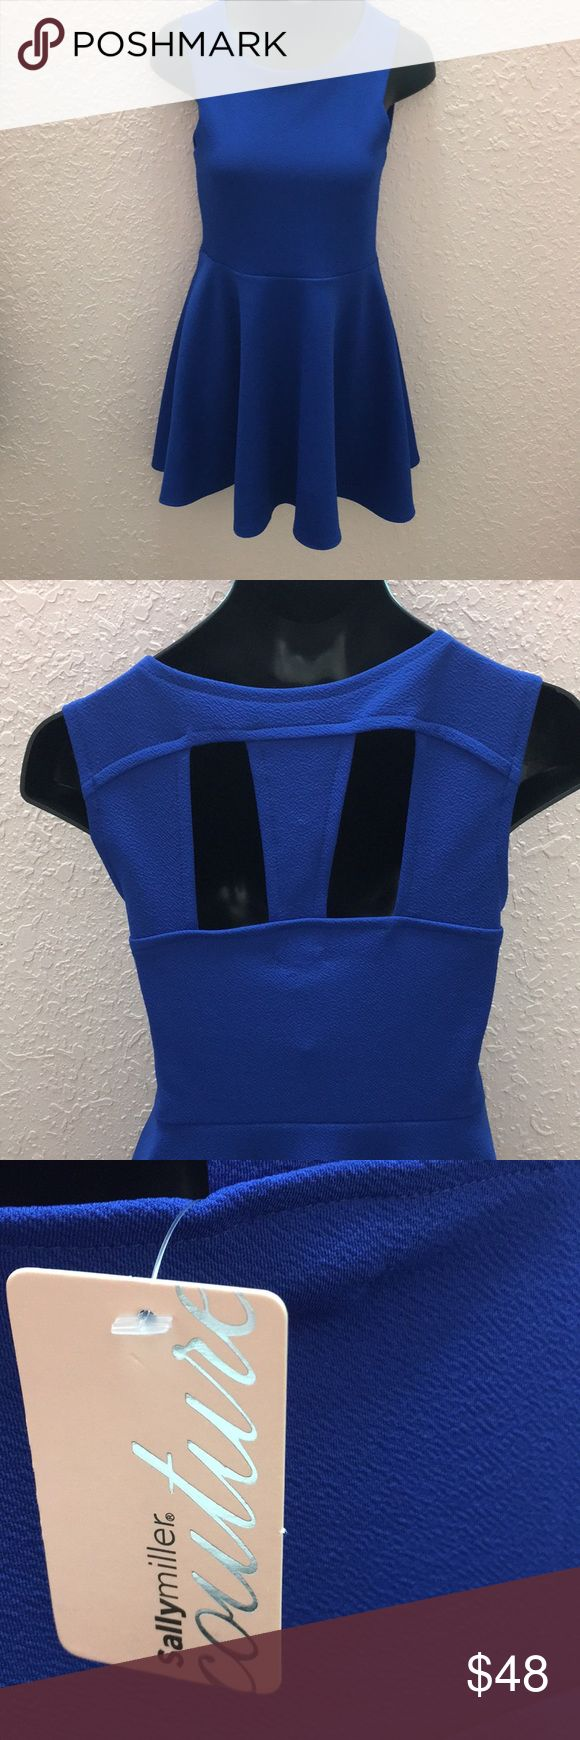 Royal Blue Sally Miller Couture Dress Gorgeous dress made by Sally Miller. Perfect for any occasion! Royal blue color with keyhole open back. Sally Miller Dresses Casual